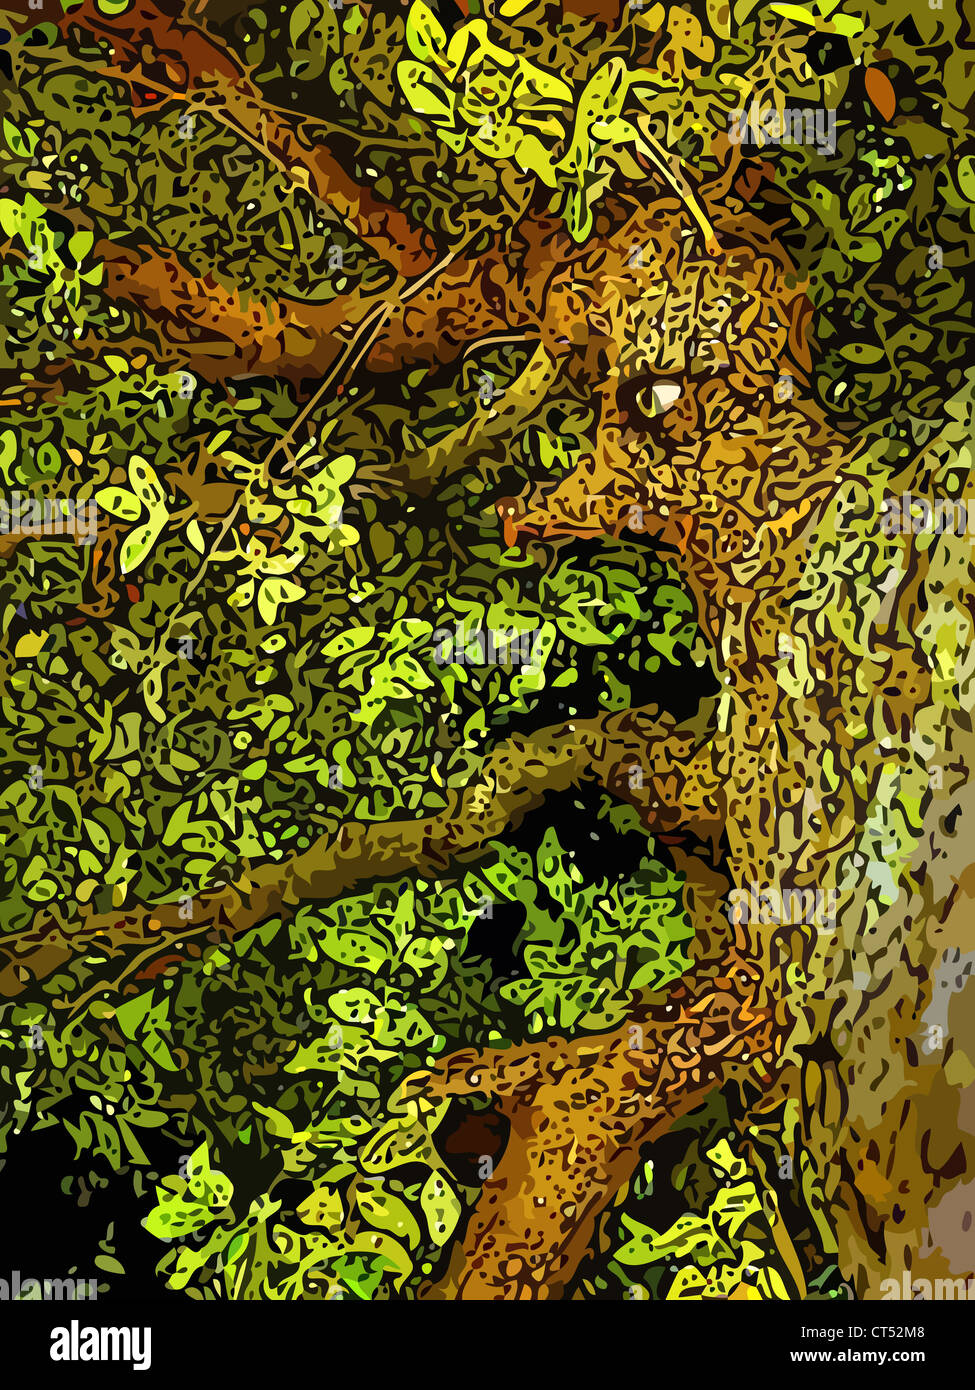 Illustration (semi vector) of an anthropomorphic tree. This is part of a series called 'march of the Huorns'. - Stock Image